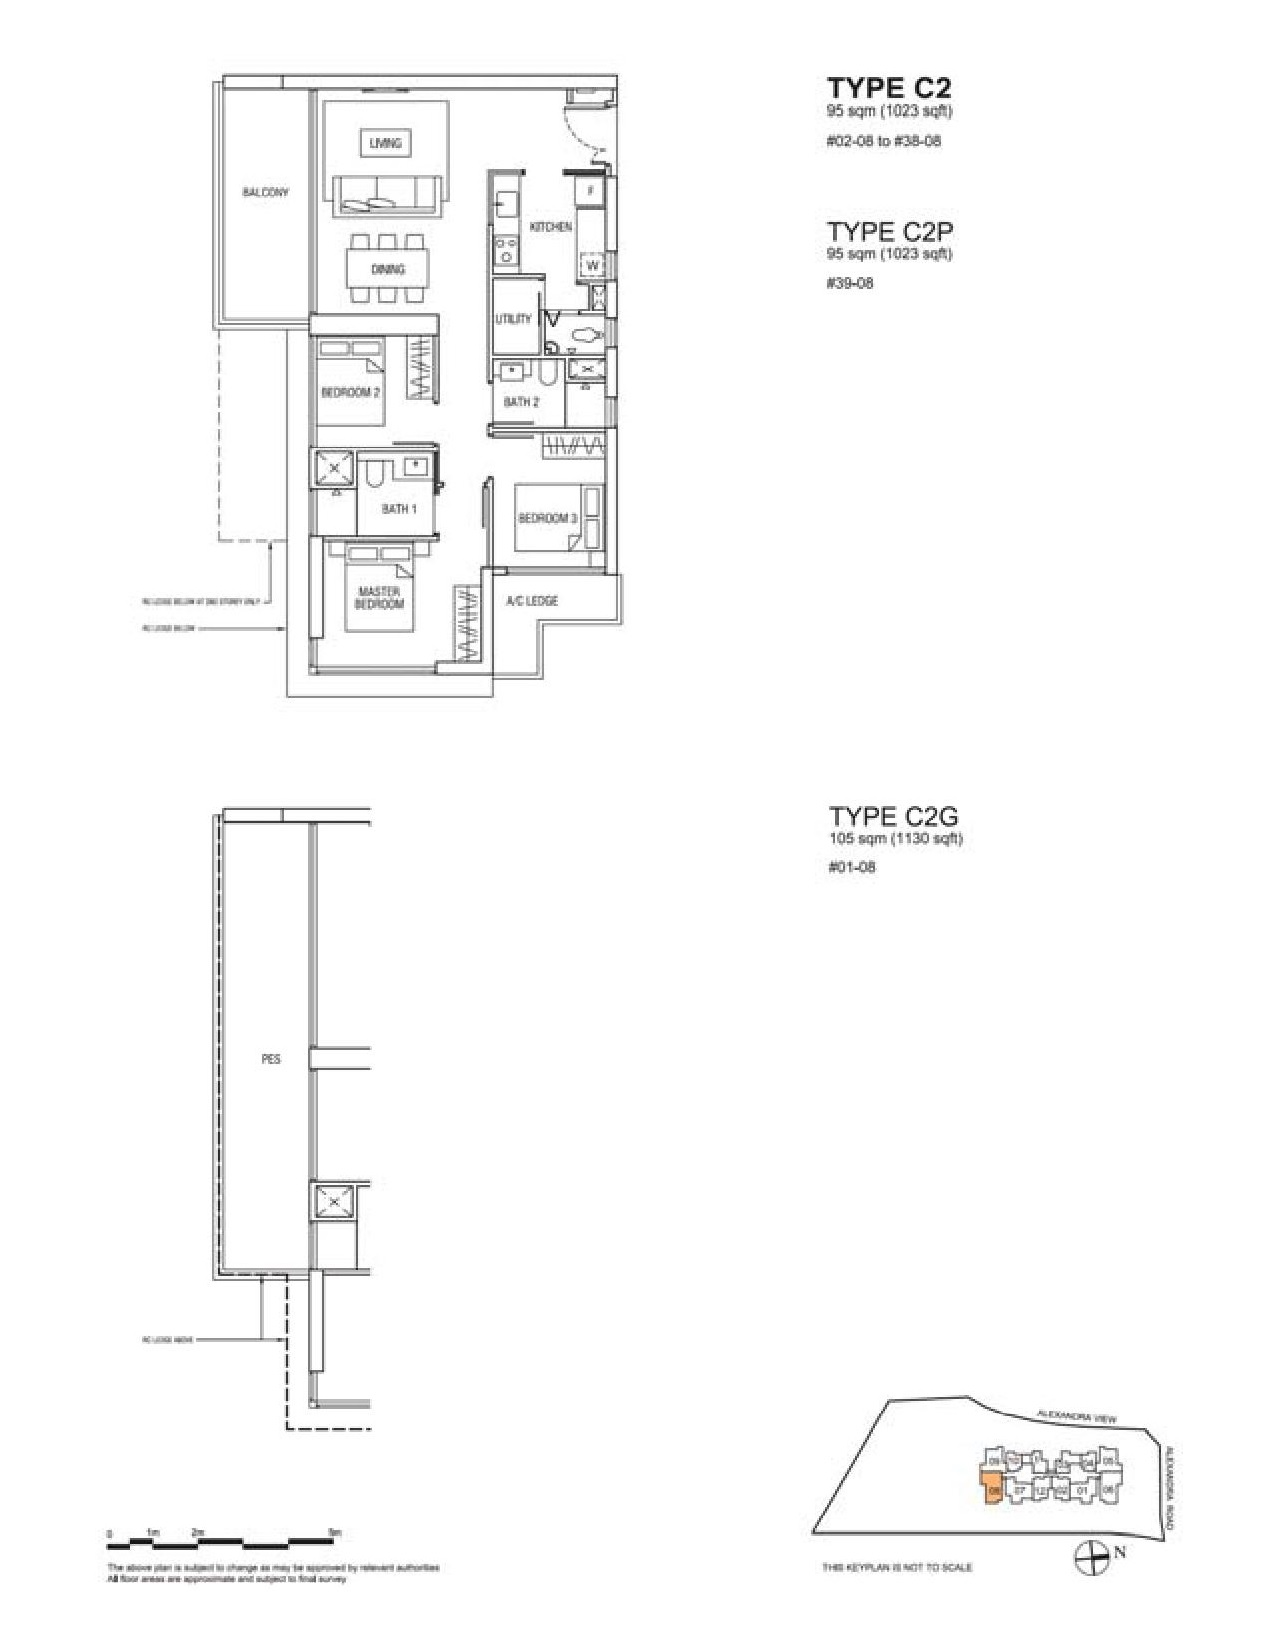 Alex Residences 3 Bedroom + Utility Floor Plans Type C2, C2P, C2G